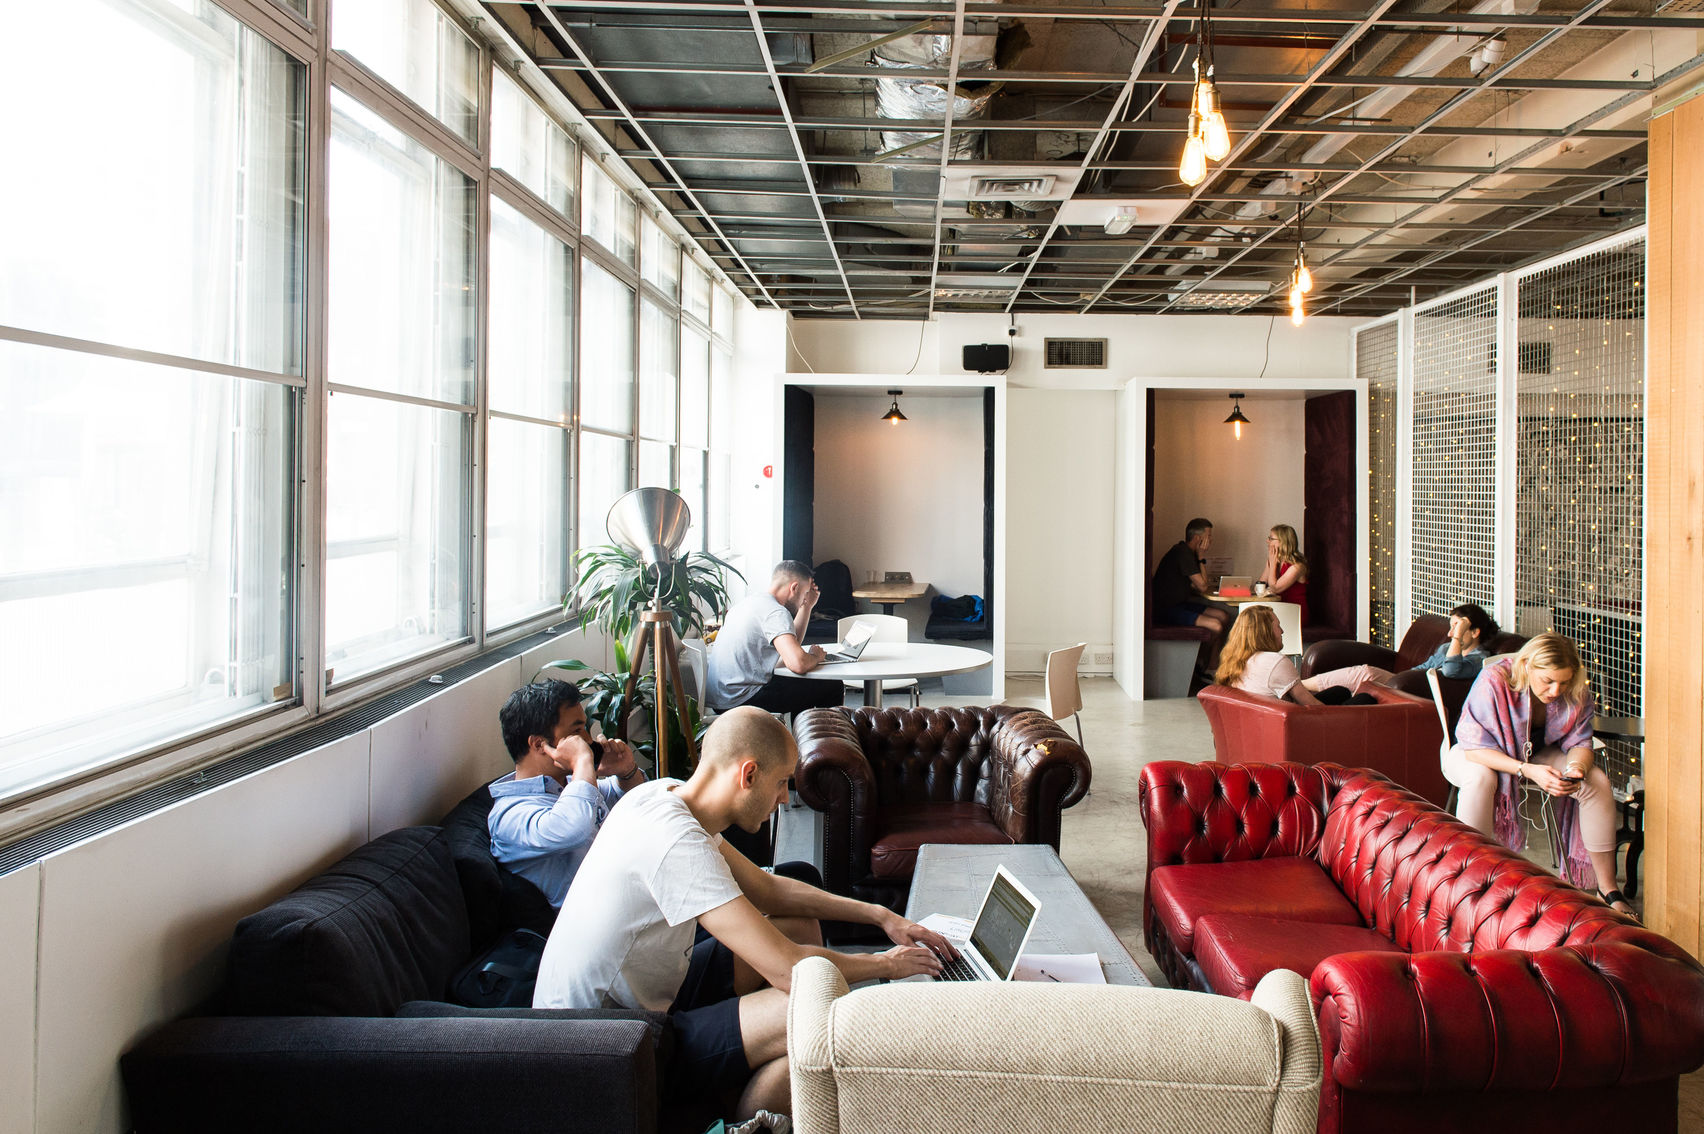 Hangar58 a laid back co-working lounge.